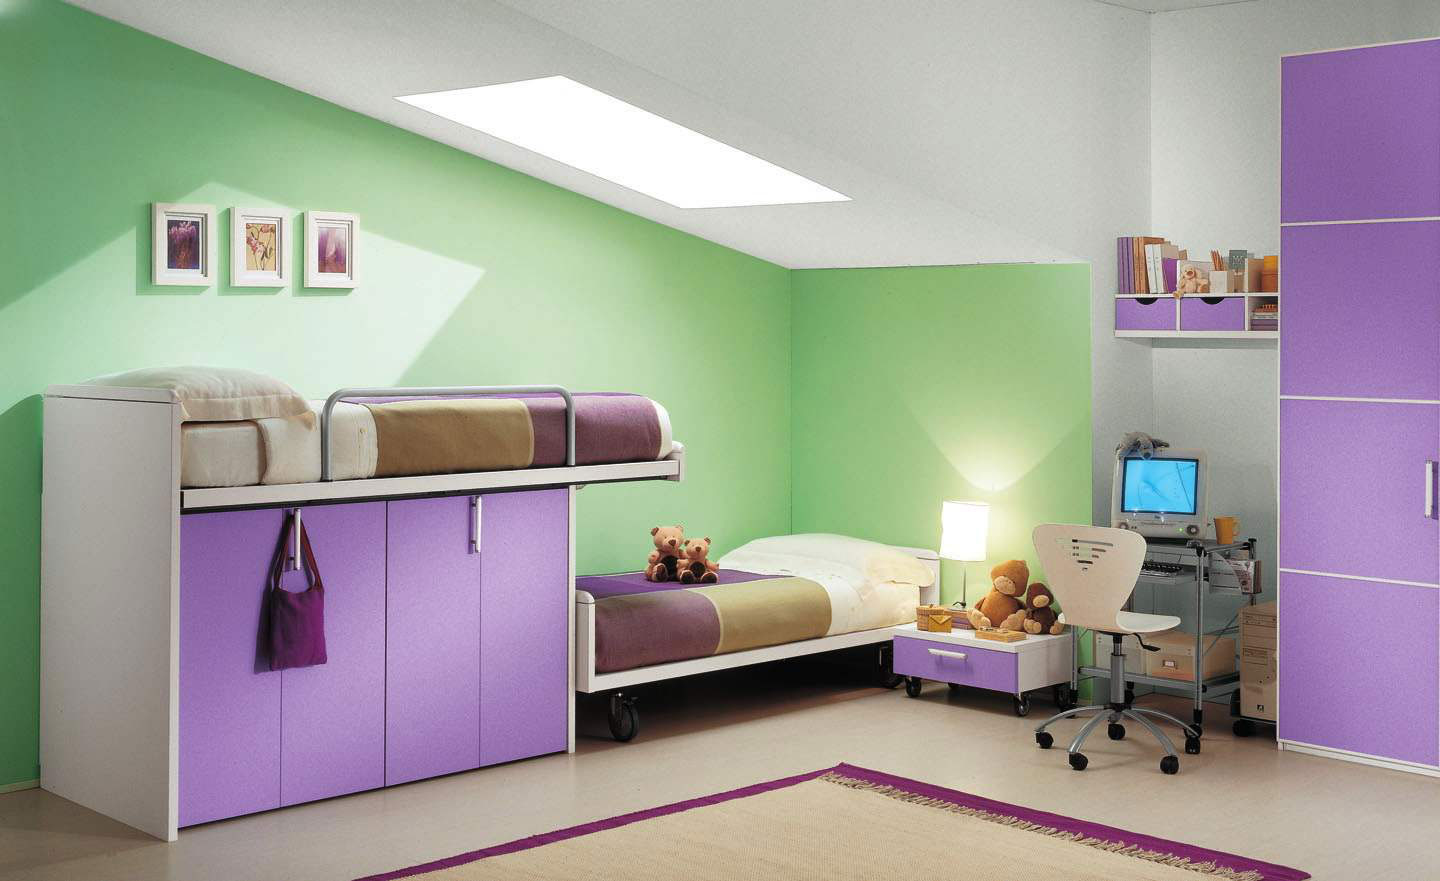 Toddler Bedroom Children Minimalist 2014